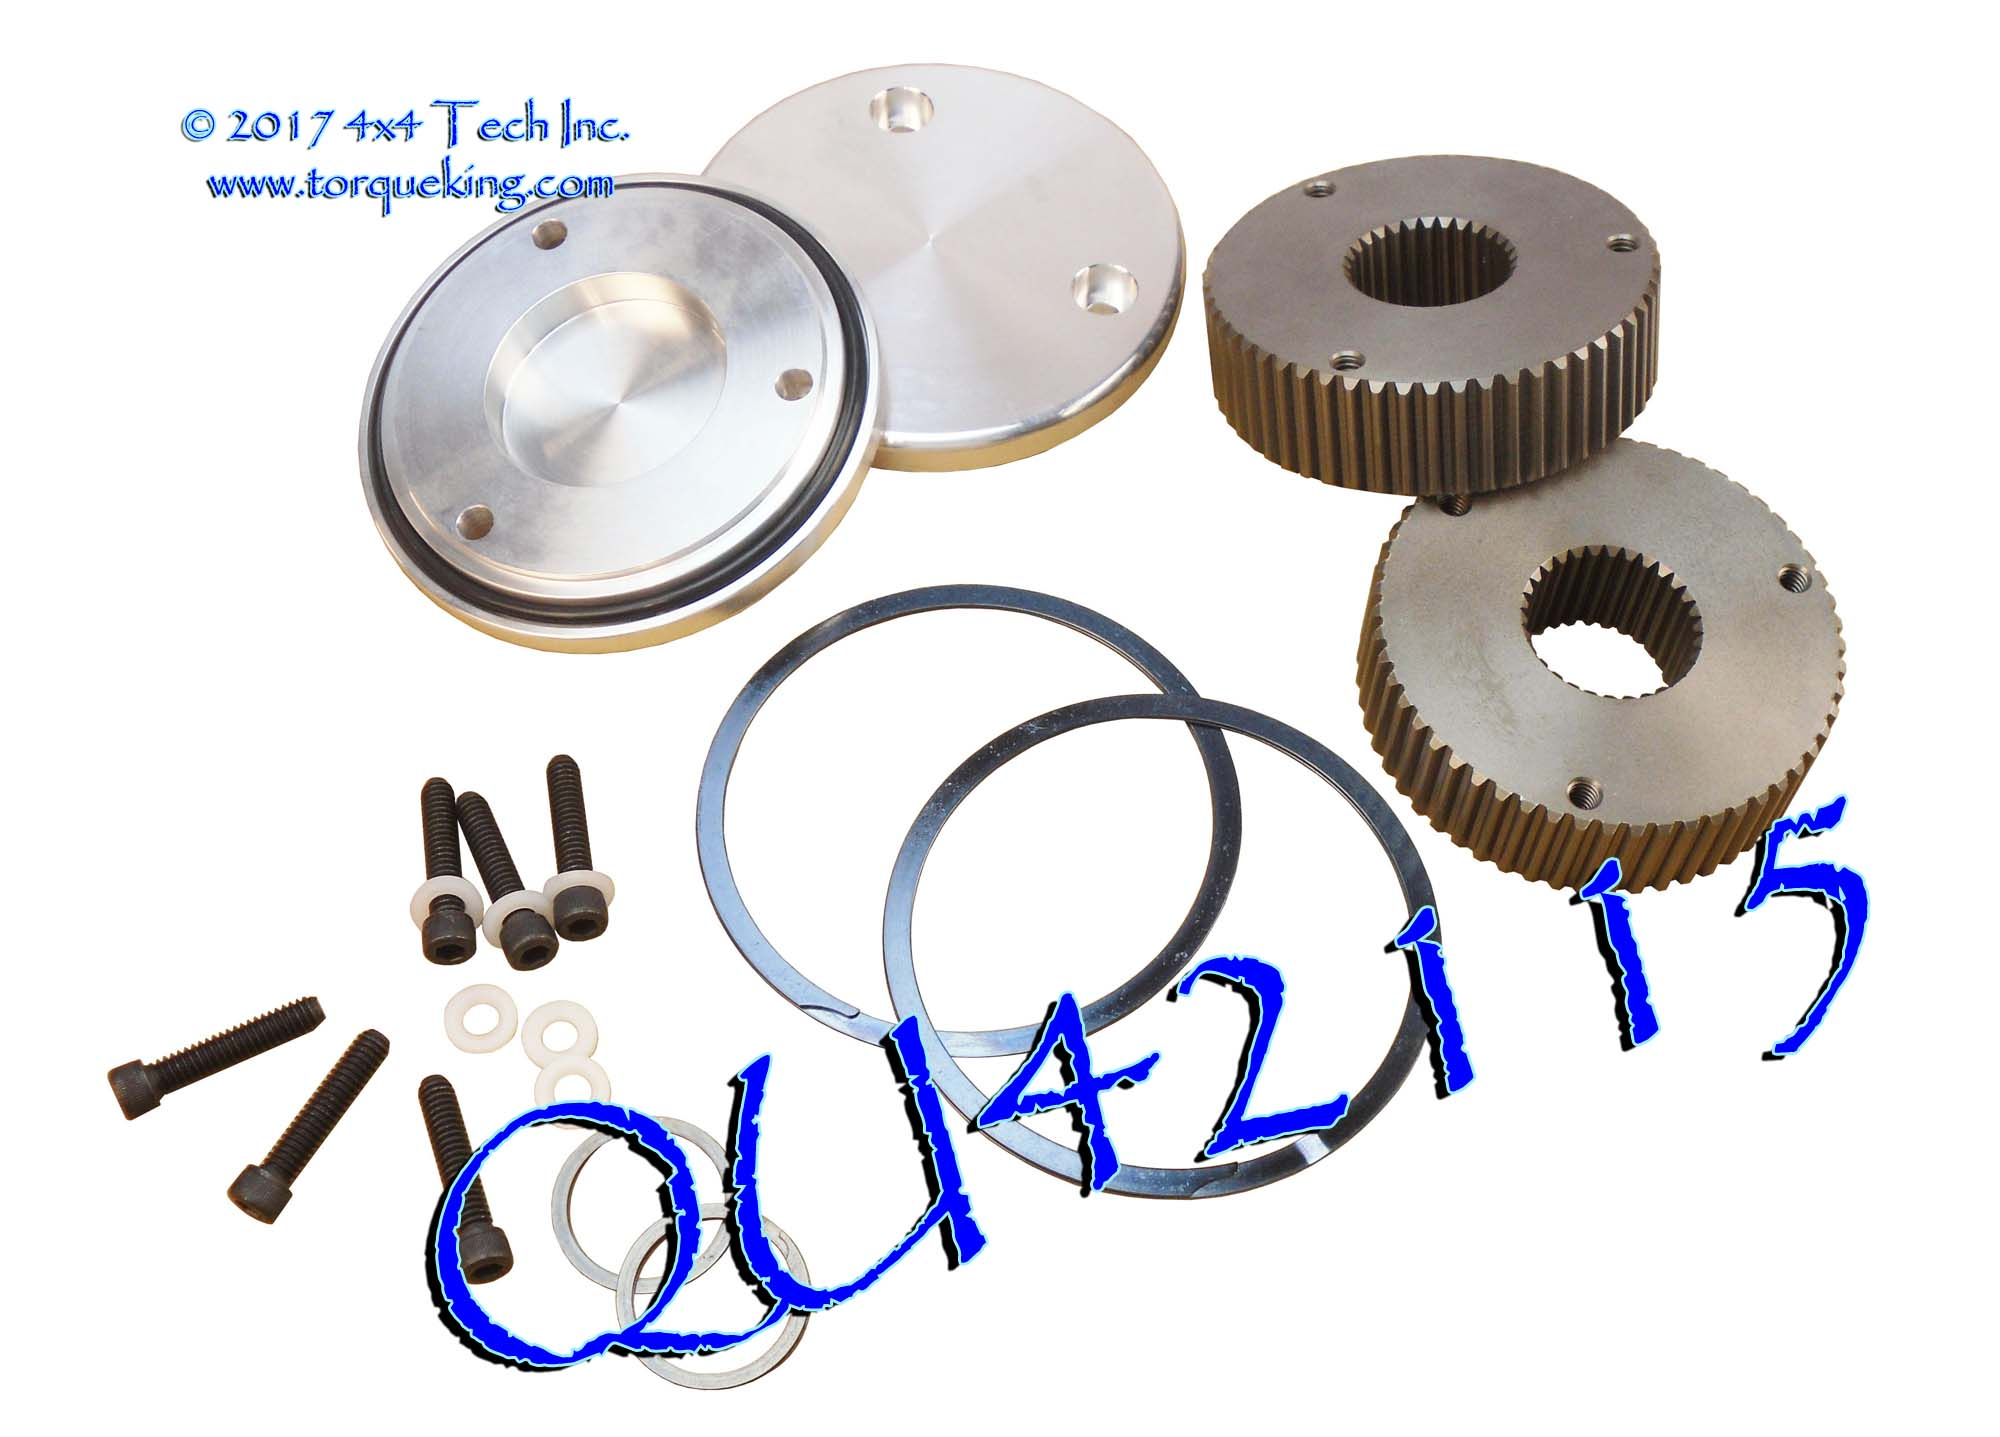 GM10bfrt19771991 Torque King 4x4. Qu42115 19 Spline Drive Gear Kit For GM 10 Bolt Front Axles With Splined Wheel Hubs. GM. GM 10 Bolt Locking Hub Diagram At Scoala.co